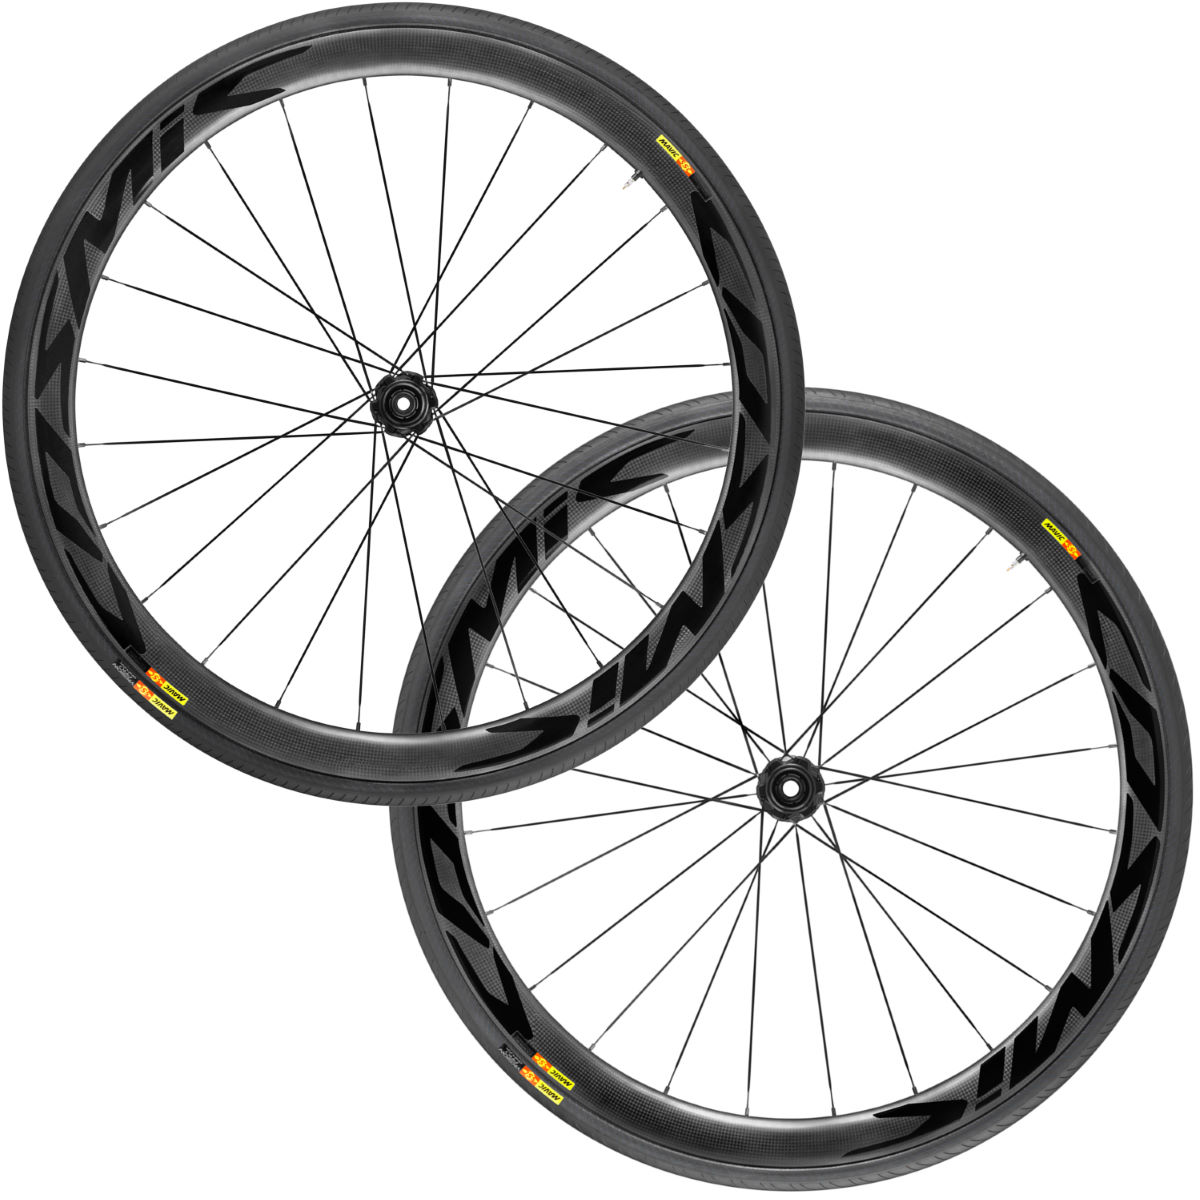 Wheel set Mavic Cosmic Pro Carbon SL Disc T - Competition wheels